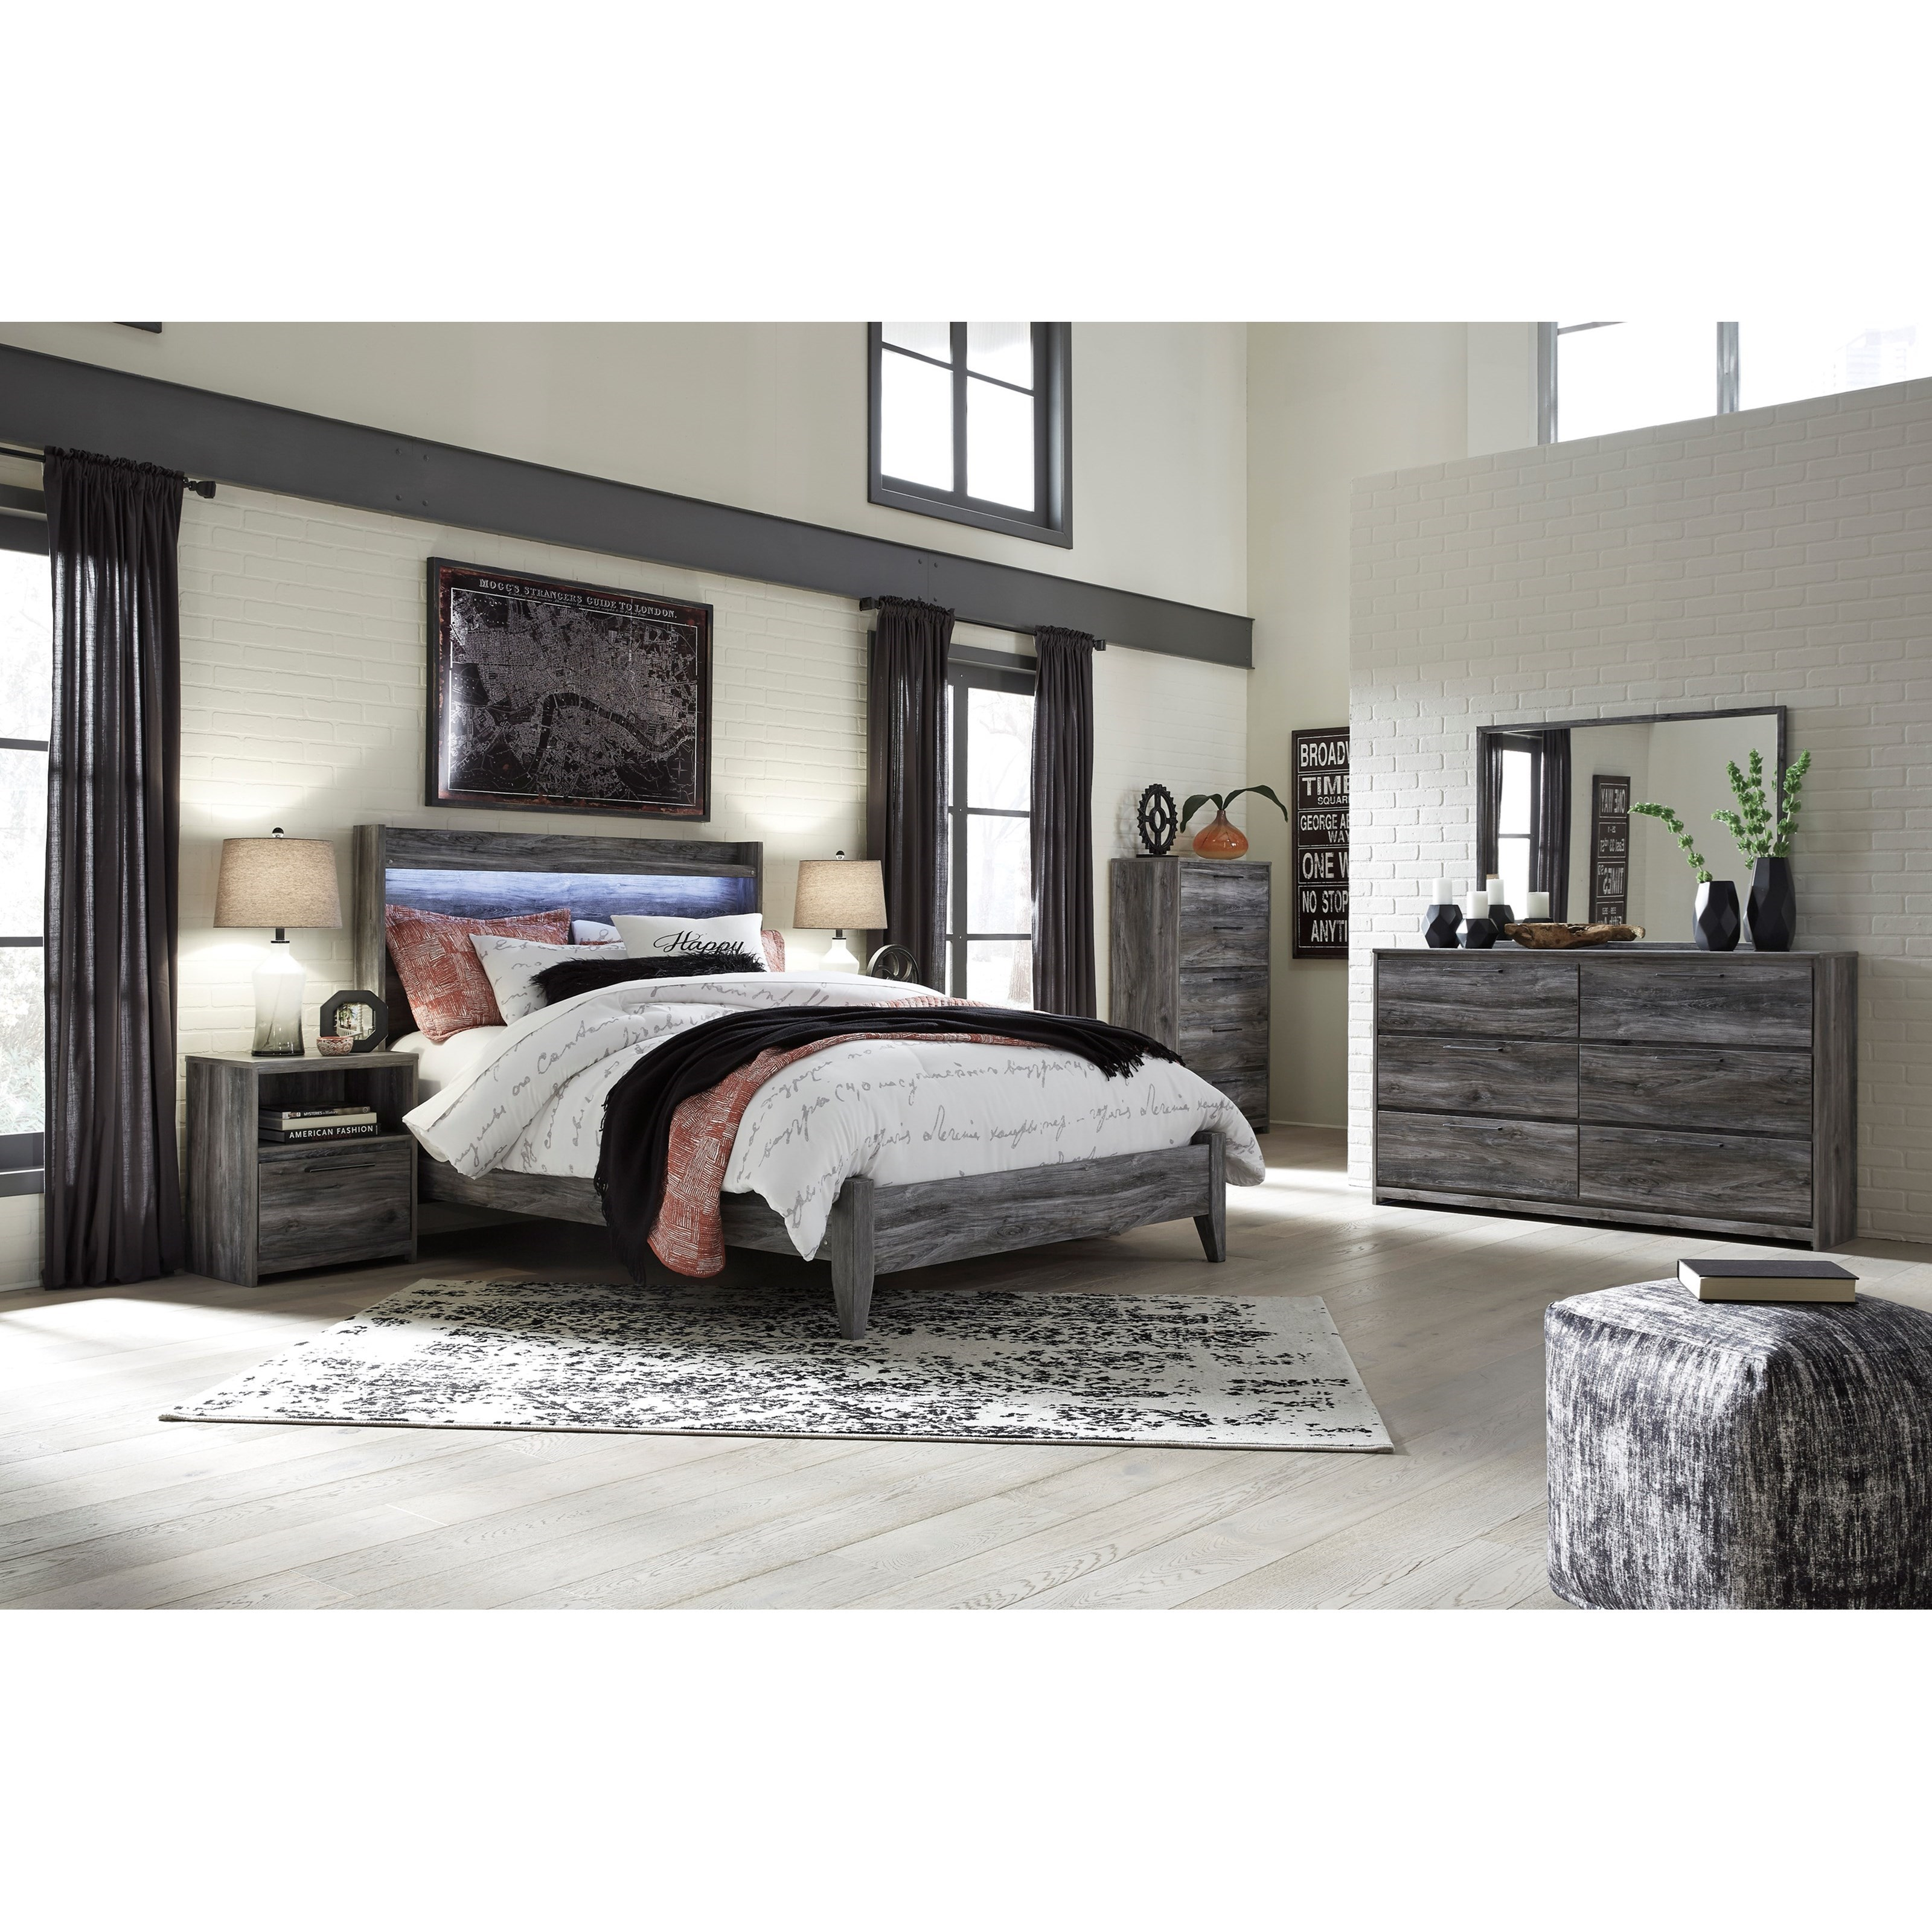 Baystorm Queen Bedroom Group by Signature Design by Ashley at Zak's Warehouse Clearance Center